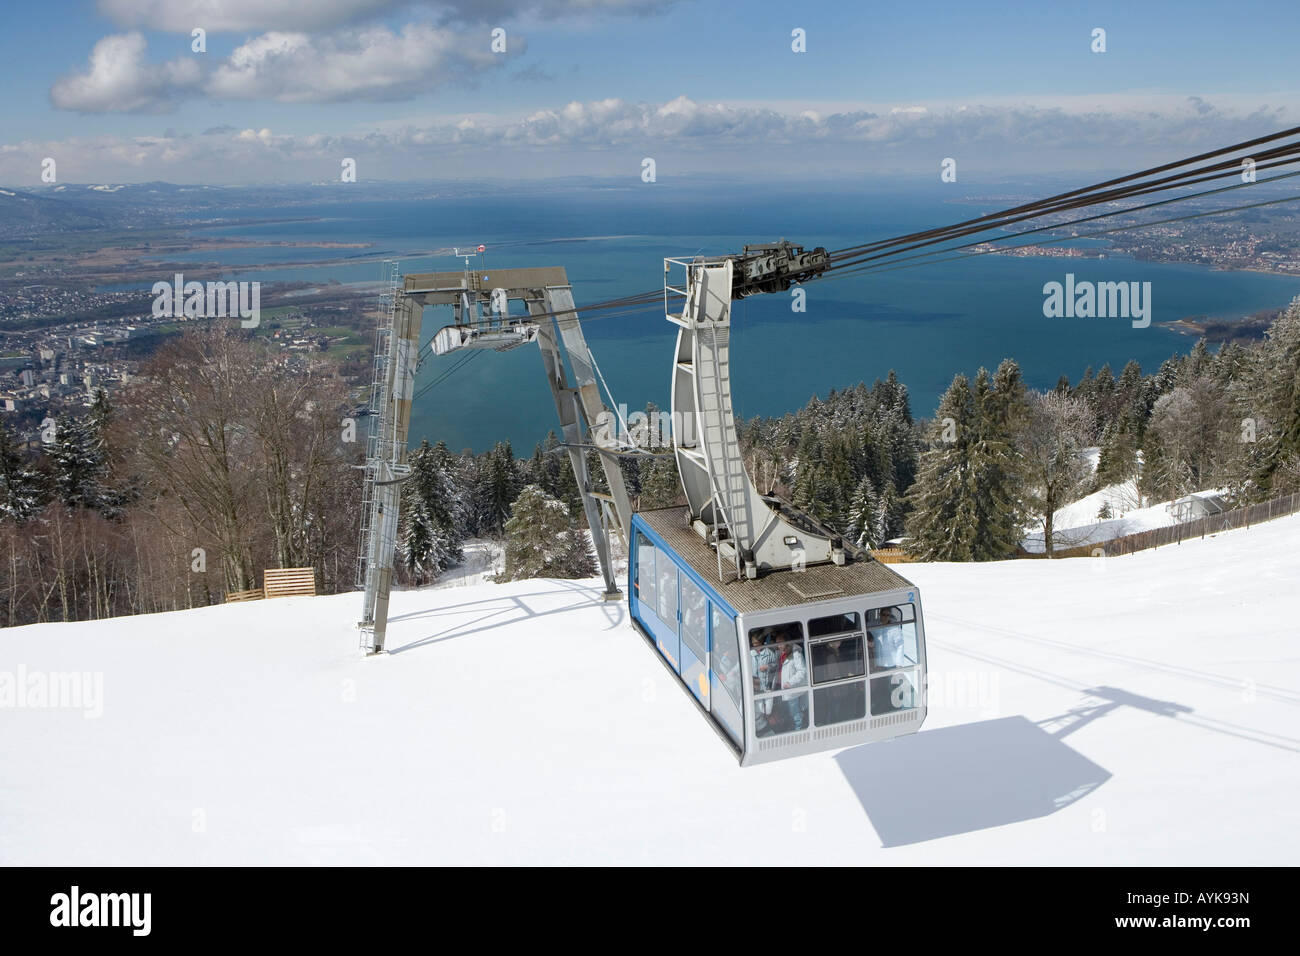 Austria, Vorarlberg, Bregenz, view from the mountain Pfaender 1064 m onto the lake Constance and the Pfaender cable - Stock Image